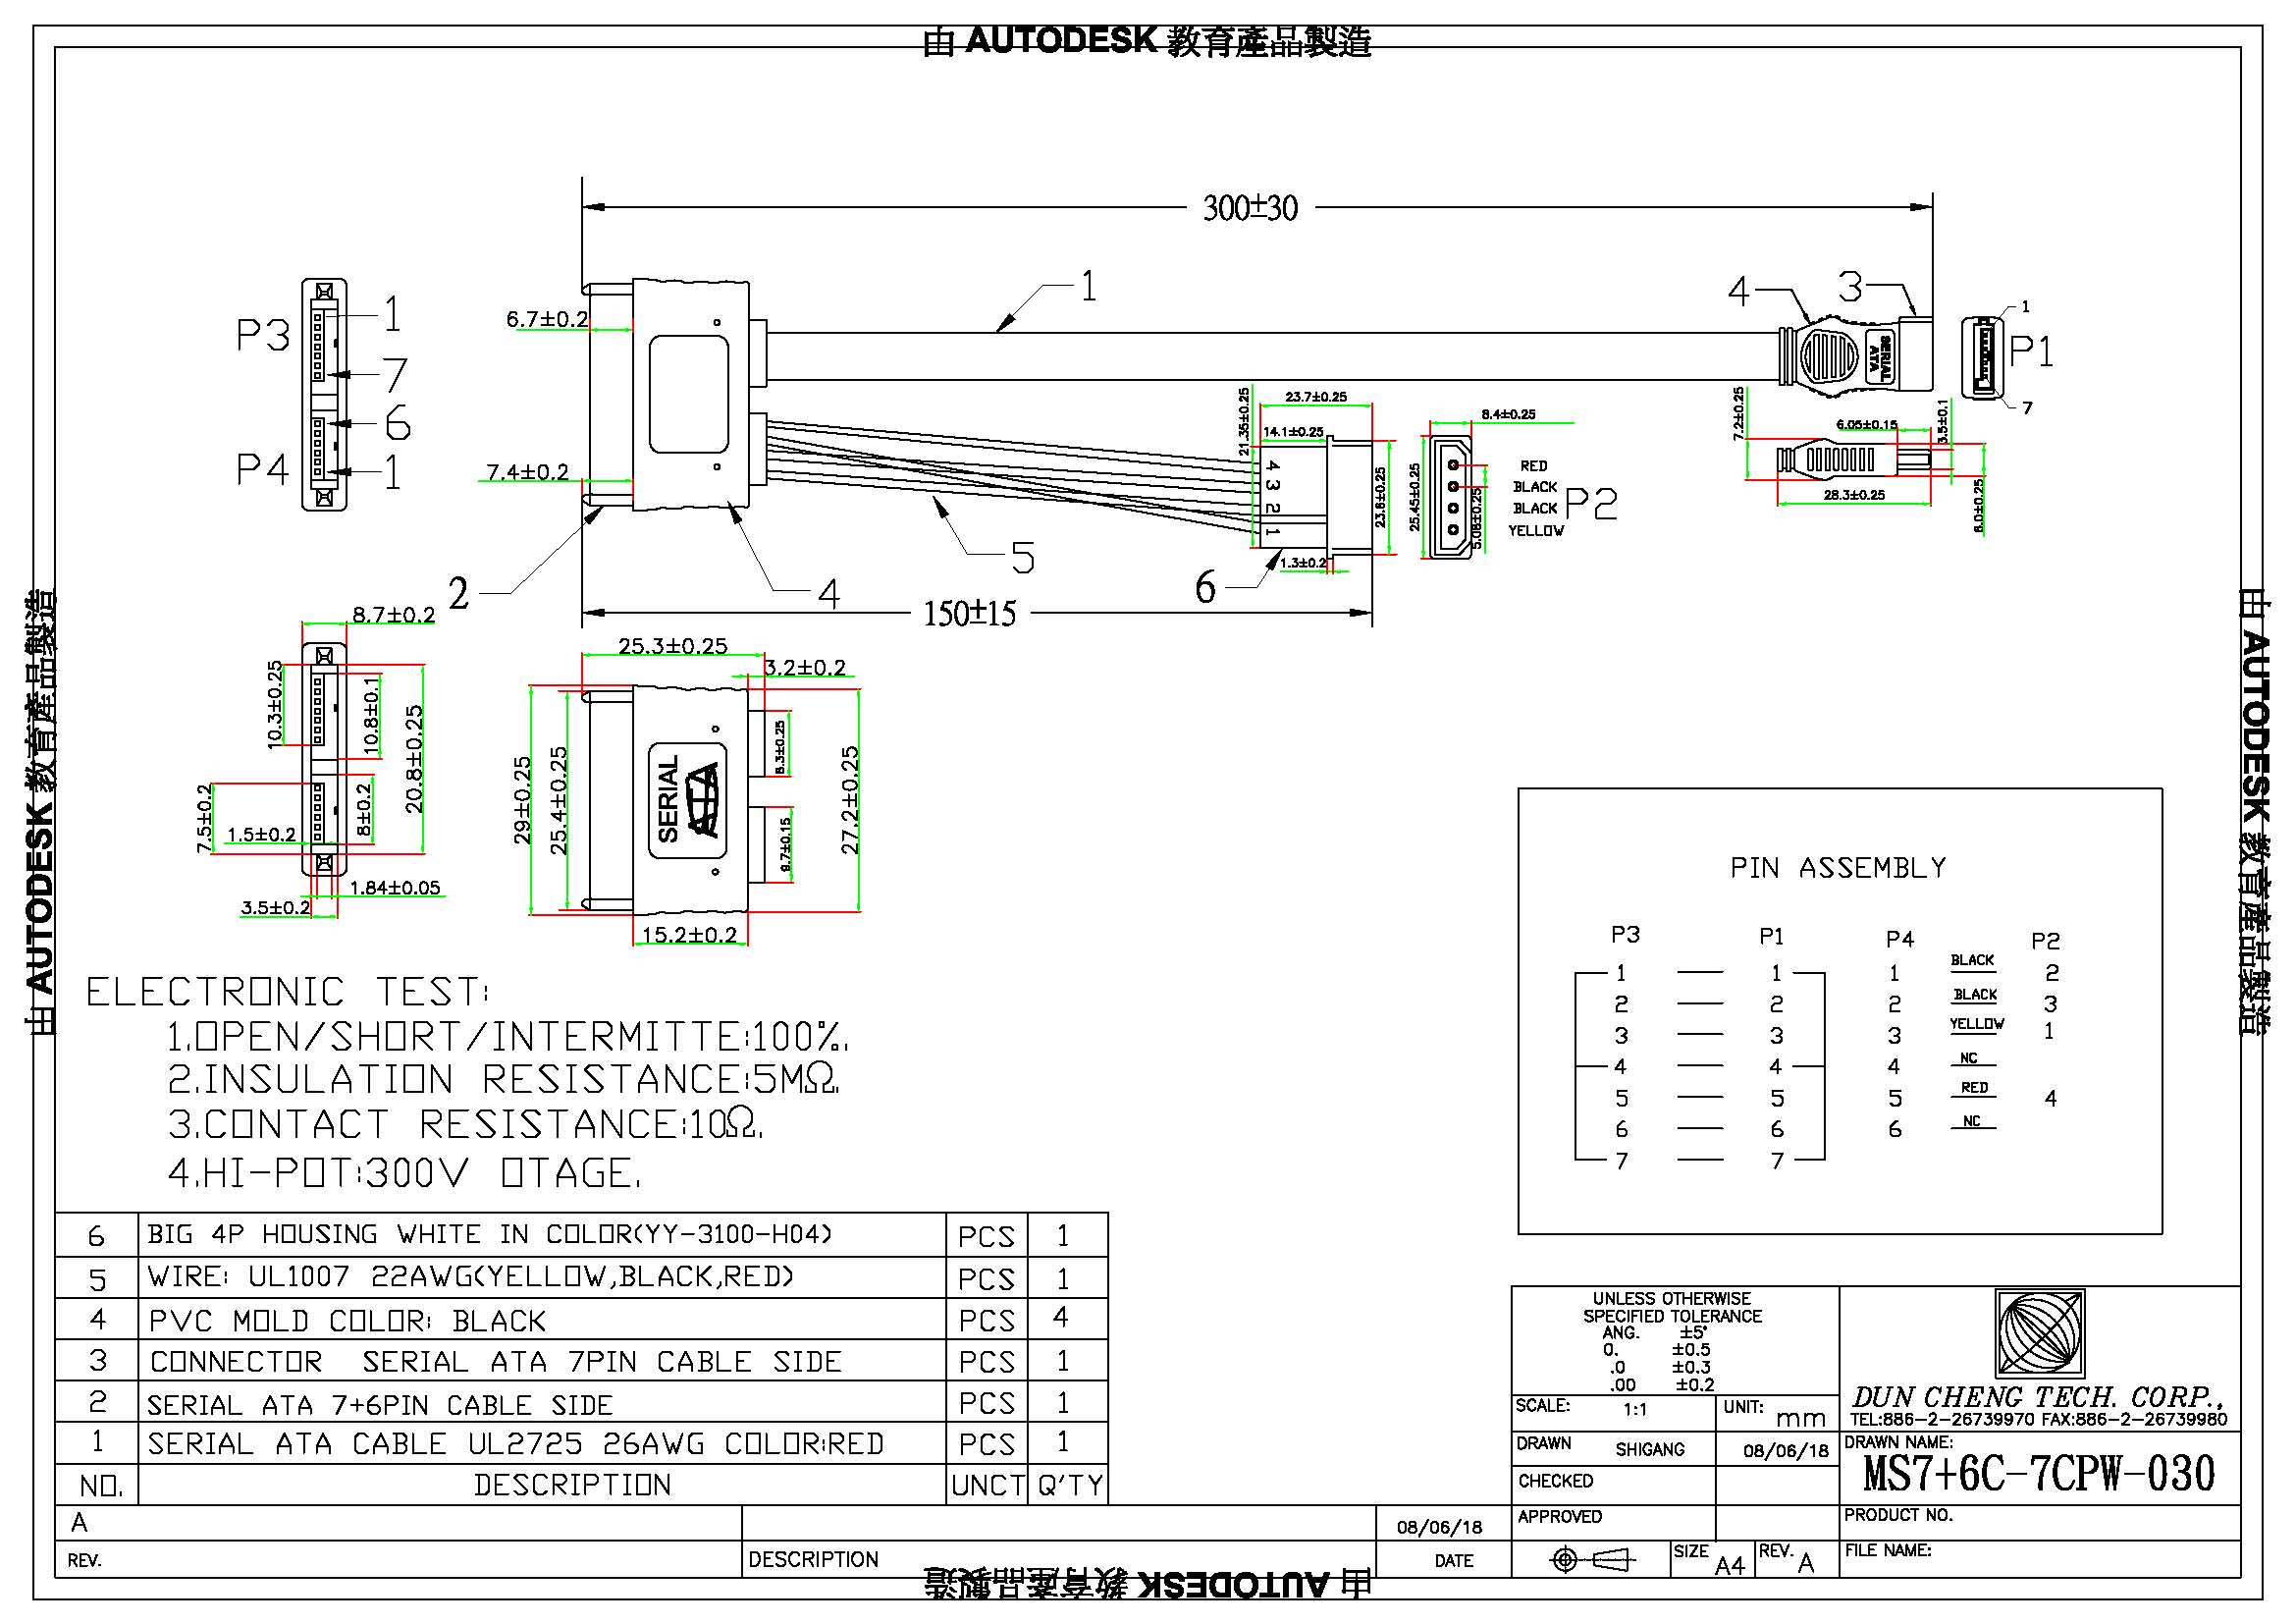 Usb Wiring Diagram Motherboard | Wiring Diagram - Usb Minu Fan Wiring Diagram